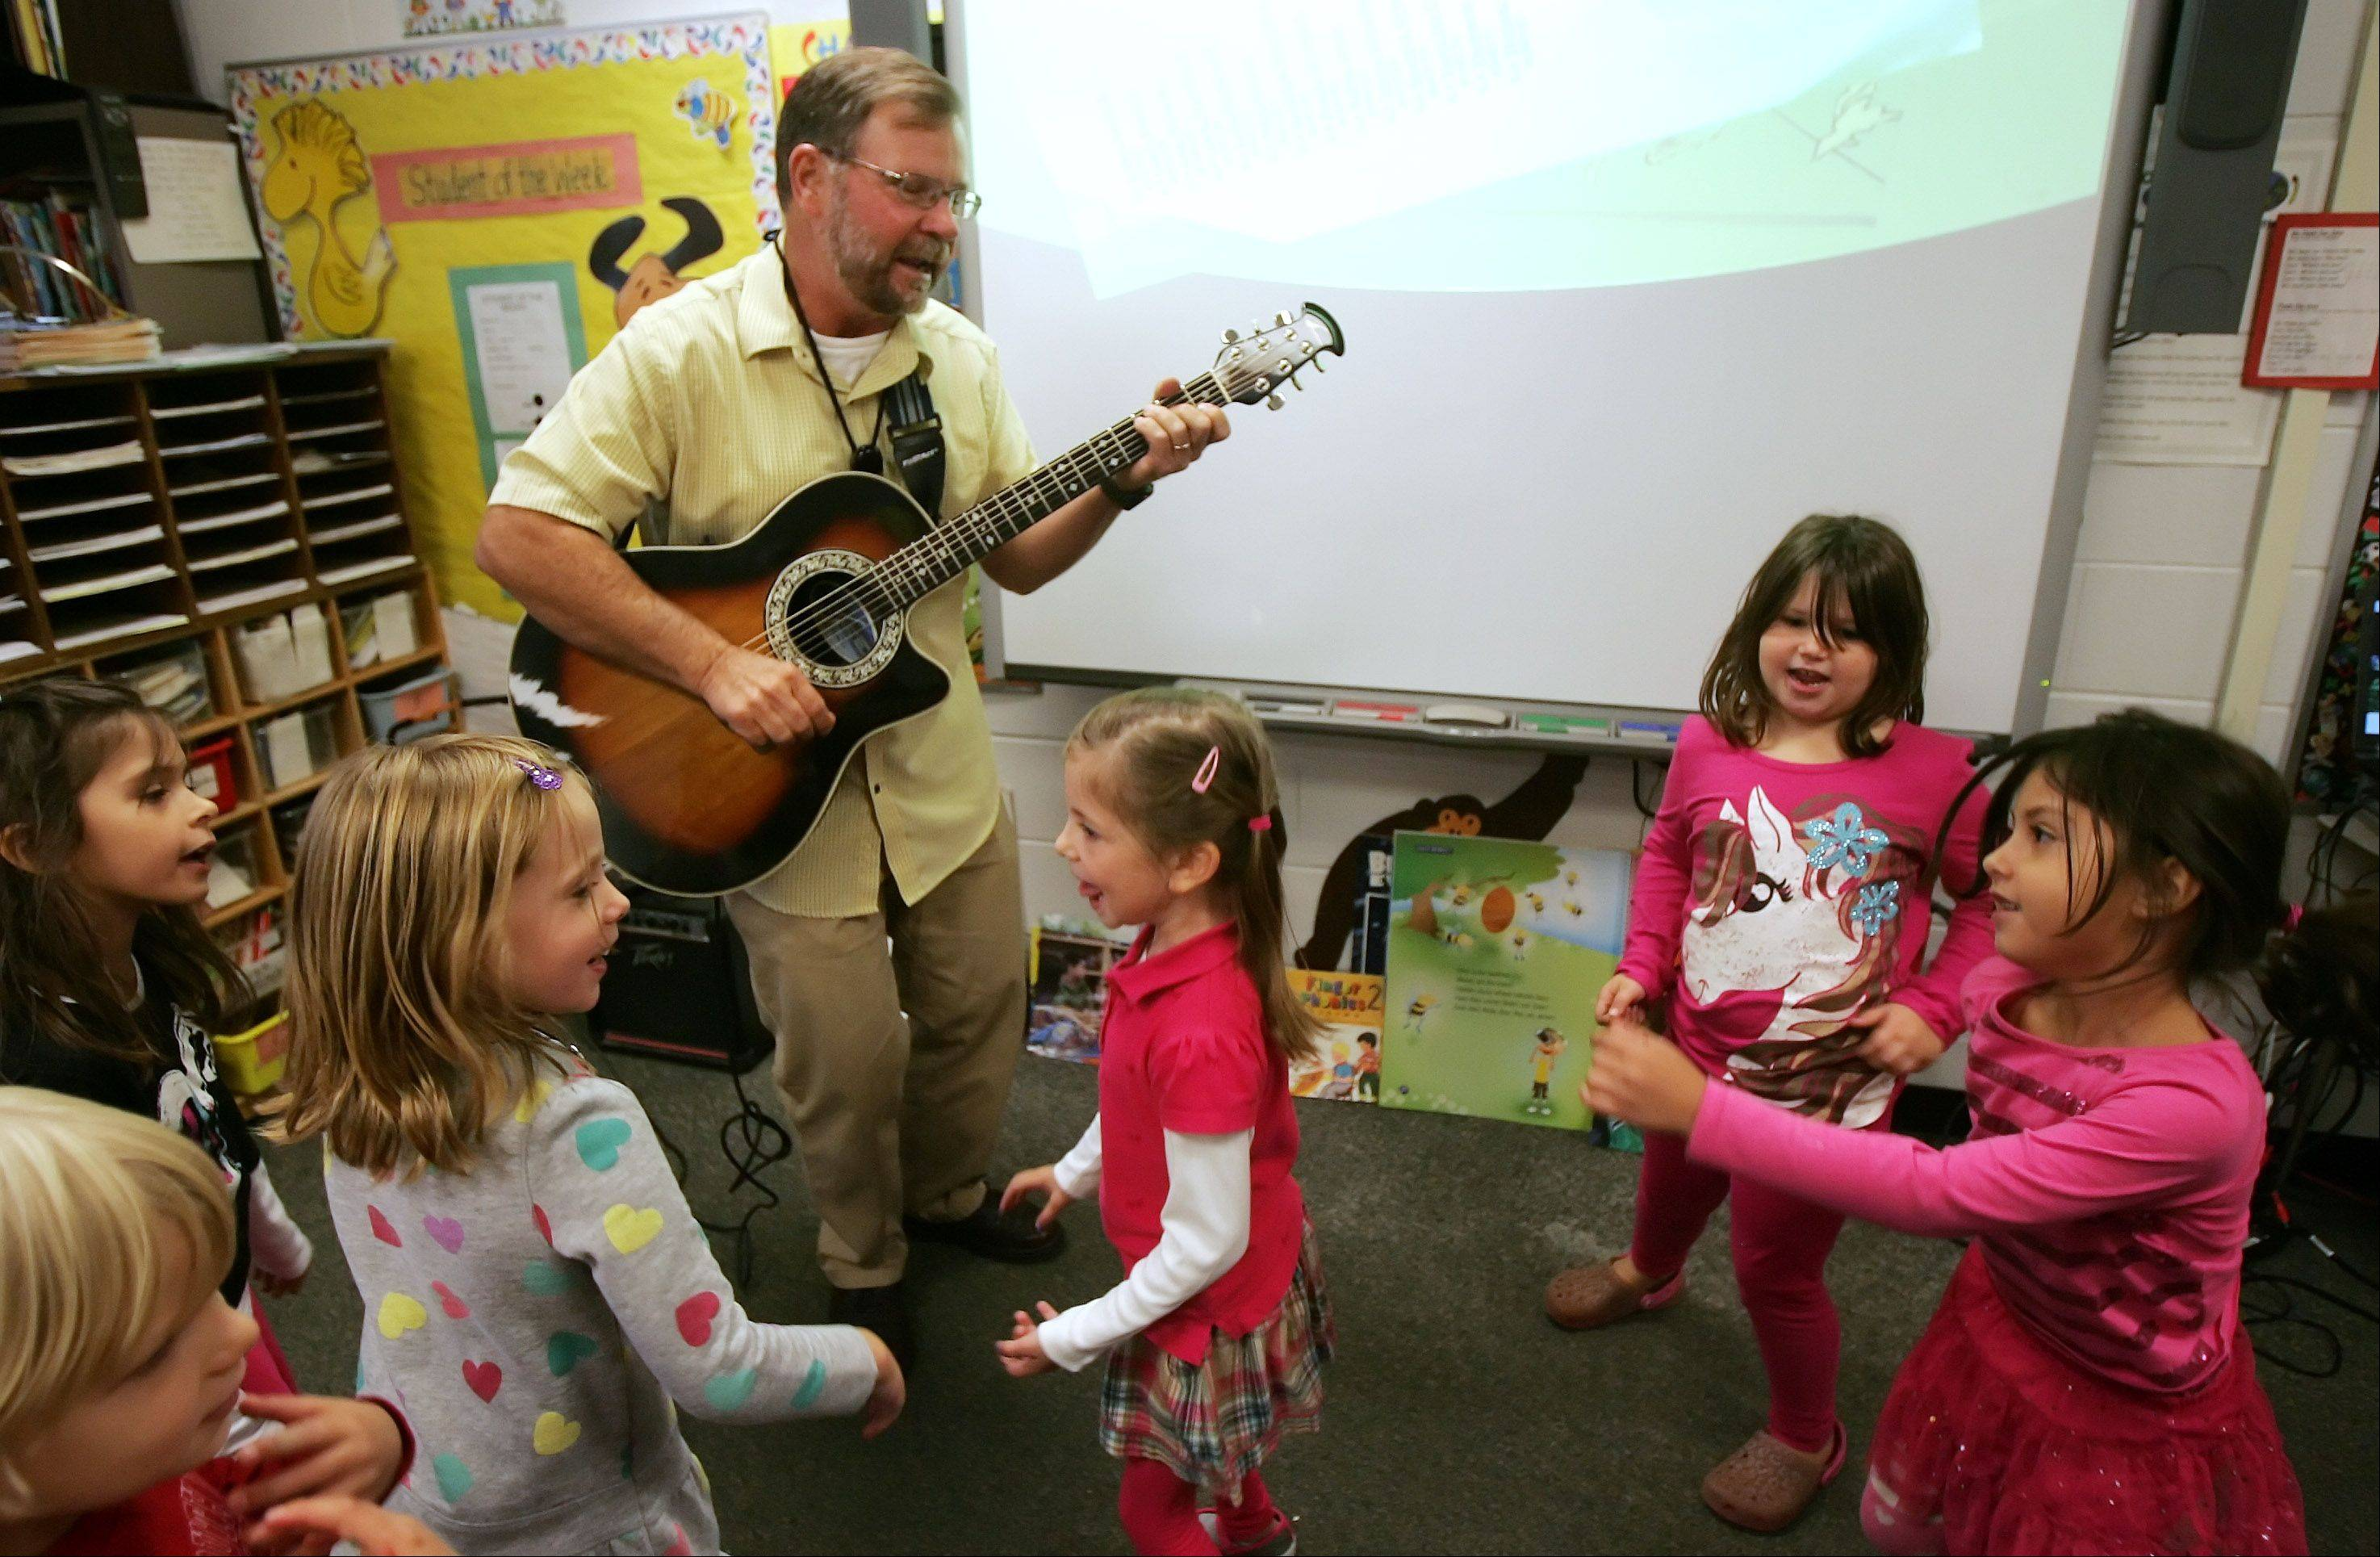 Kindergarten students dance to �Dance Your Sillies Out� as their teacher Tim Gapp plays guitar at North Barrington Elementary School. Gapp has been teaching kindergarten classes at the Barrington District 220 school for more than 20 years and is retiring in 2015.